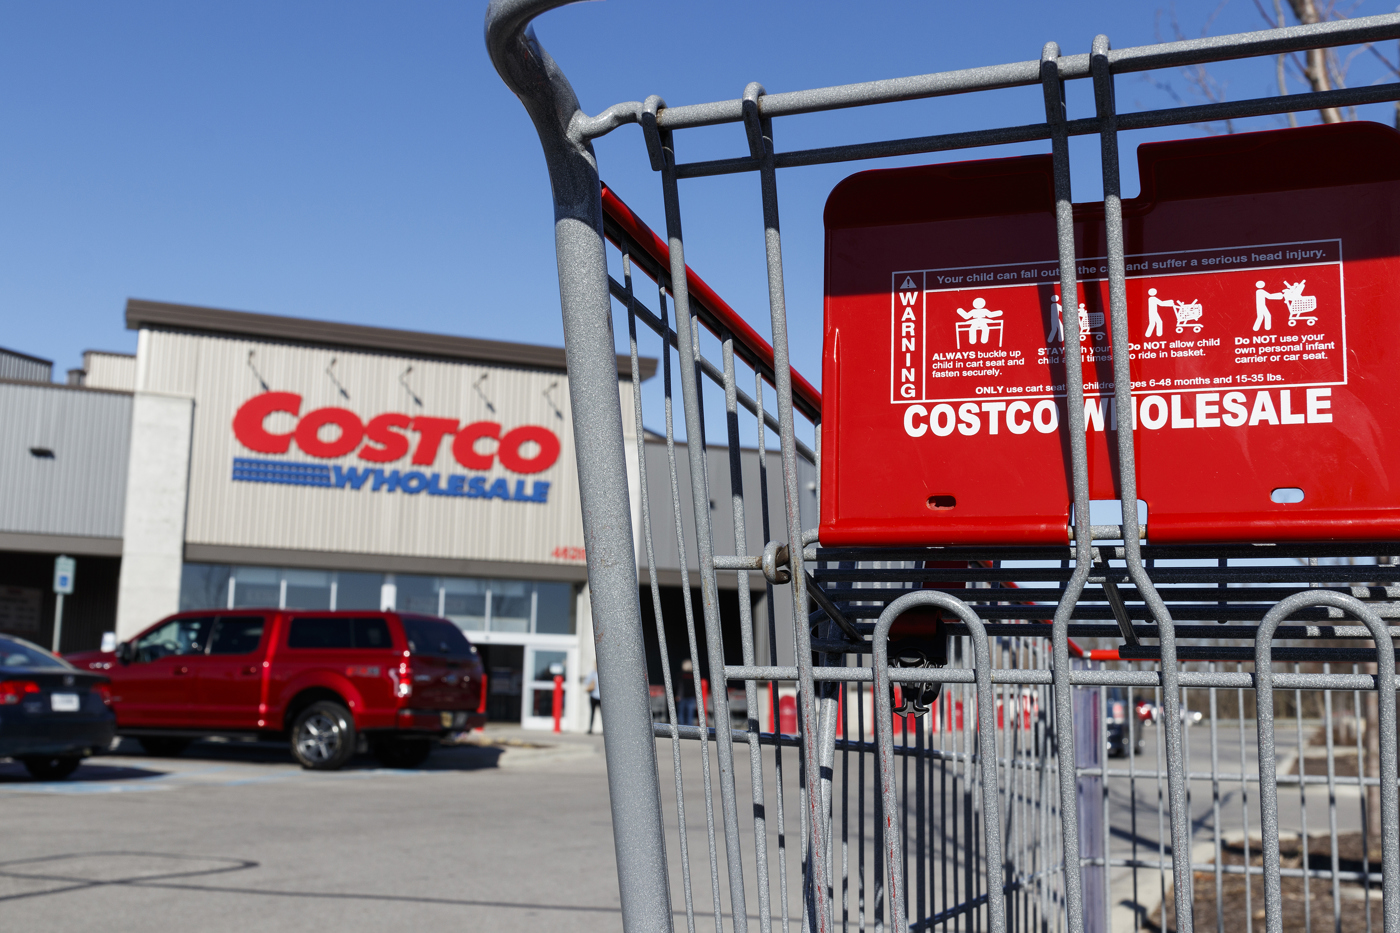 Costco COST stock news and analysis